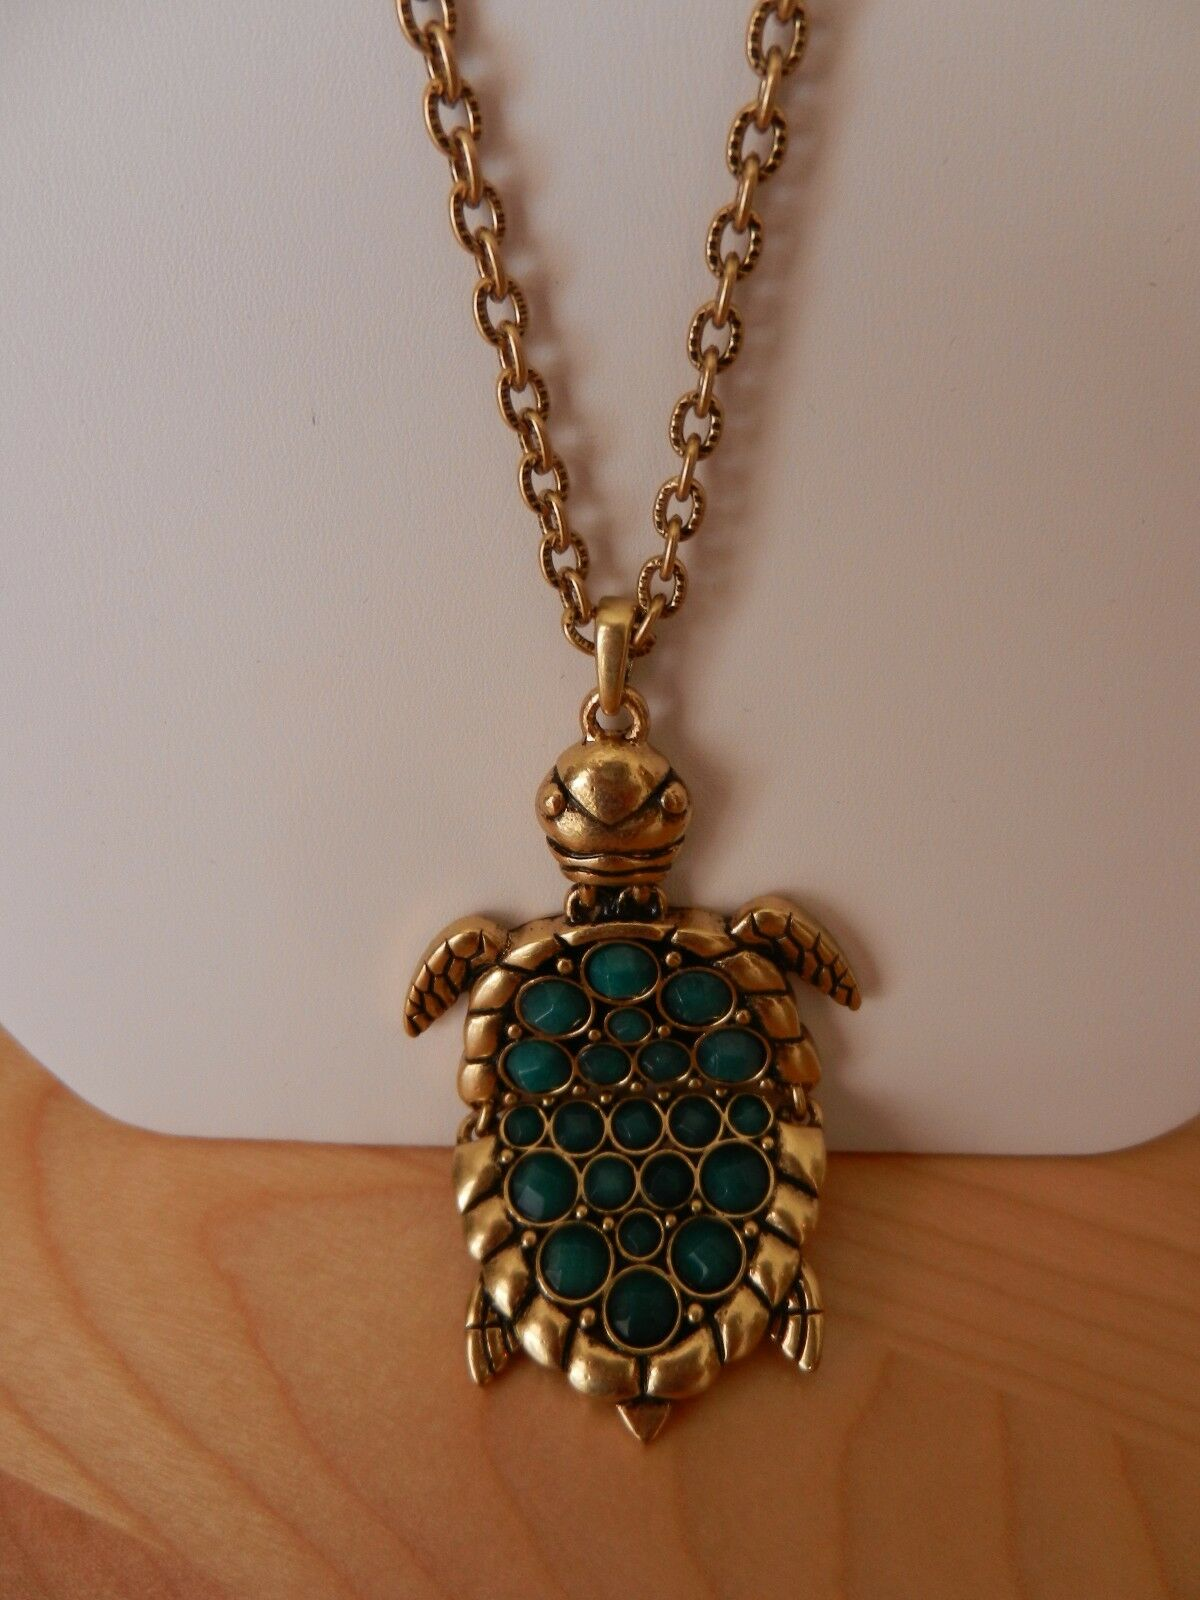 black big image products for pendant women color stone abmhjewelry product vintage green gold gothic necklace